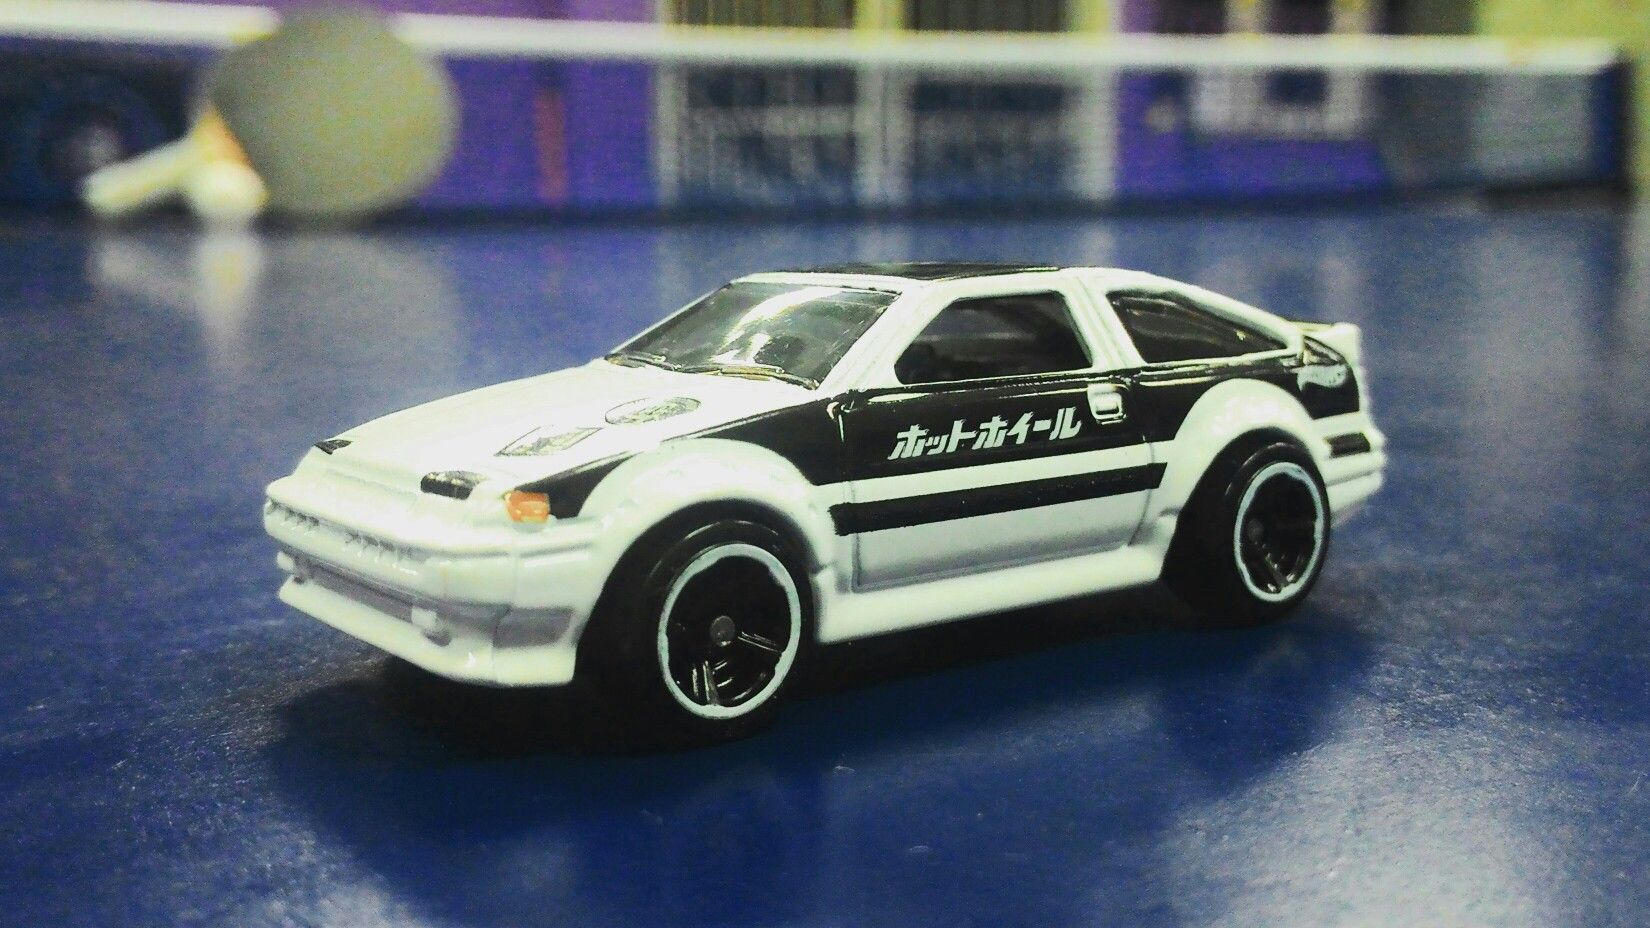 Toyota Ae 86 Corolla Initial D My Hot Wheels Collections Hotwheels Red